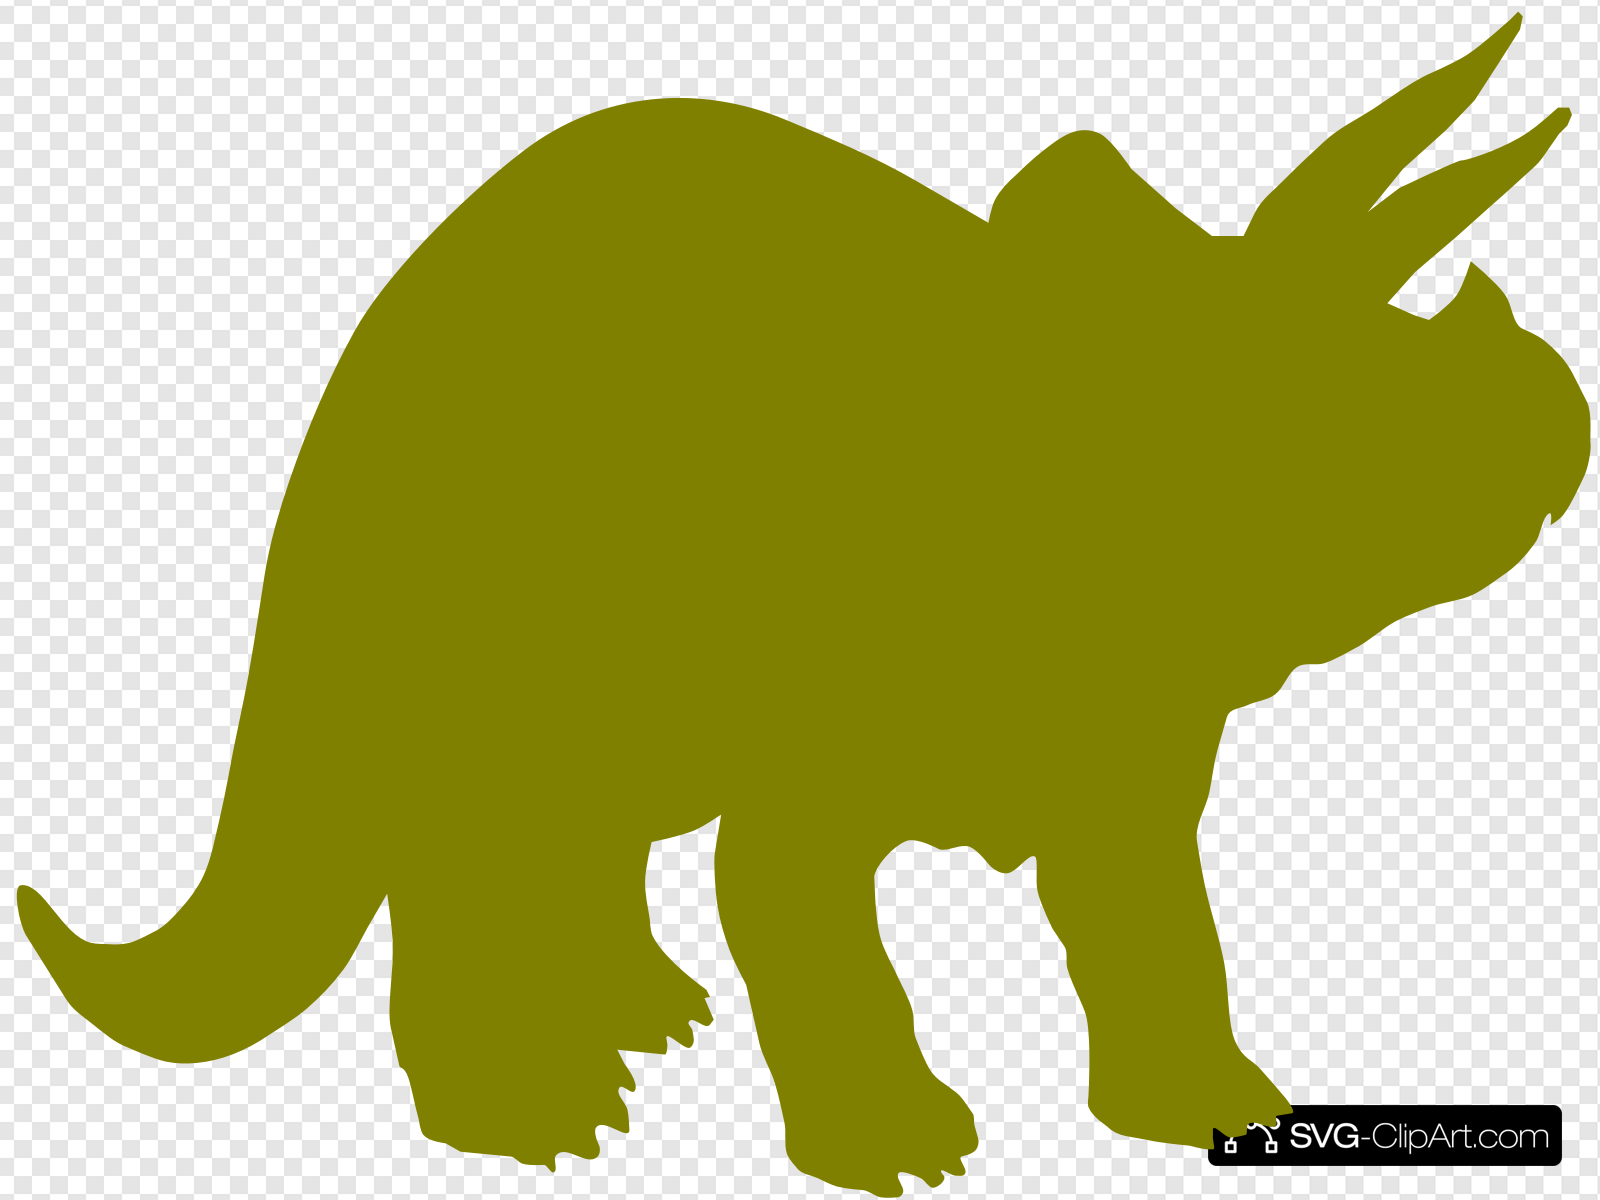 Dino 3 Clip art, Icon and SVG.